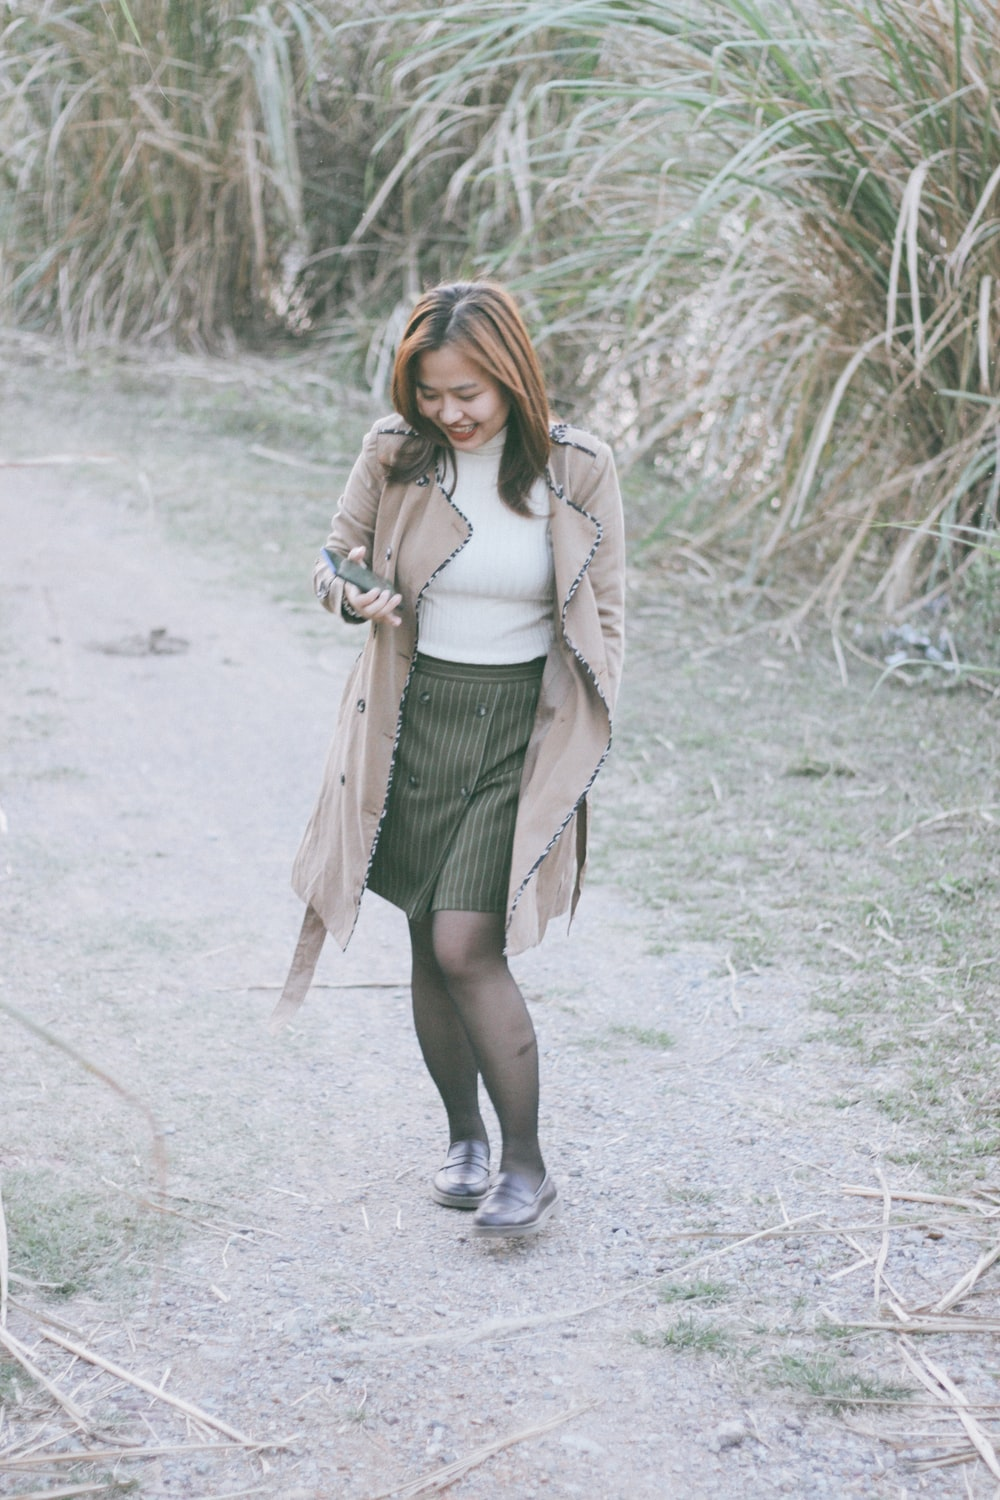 woman in white long sleeve shirt and green skirt standing on gray concrete pavement during daytime